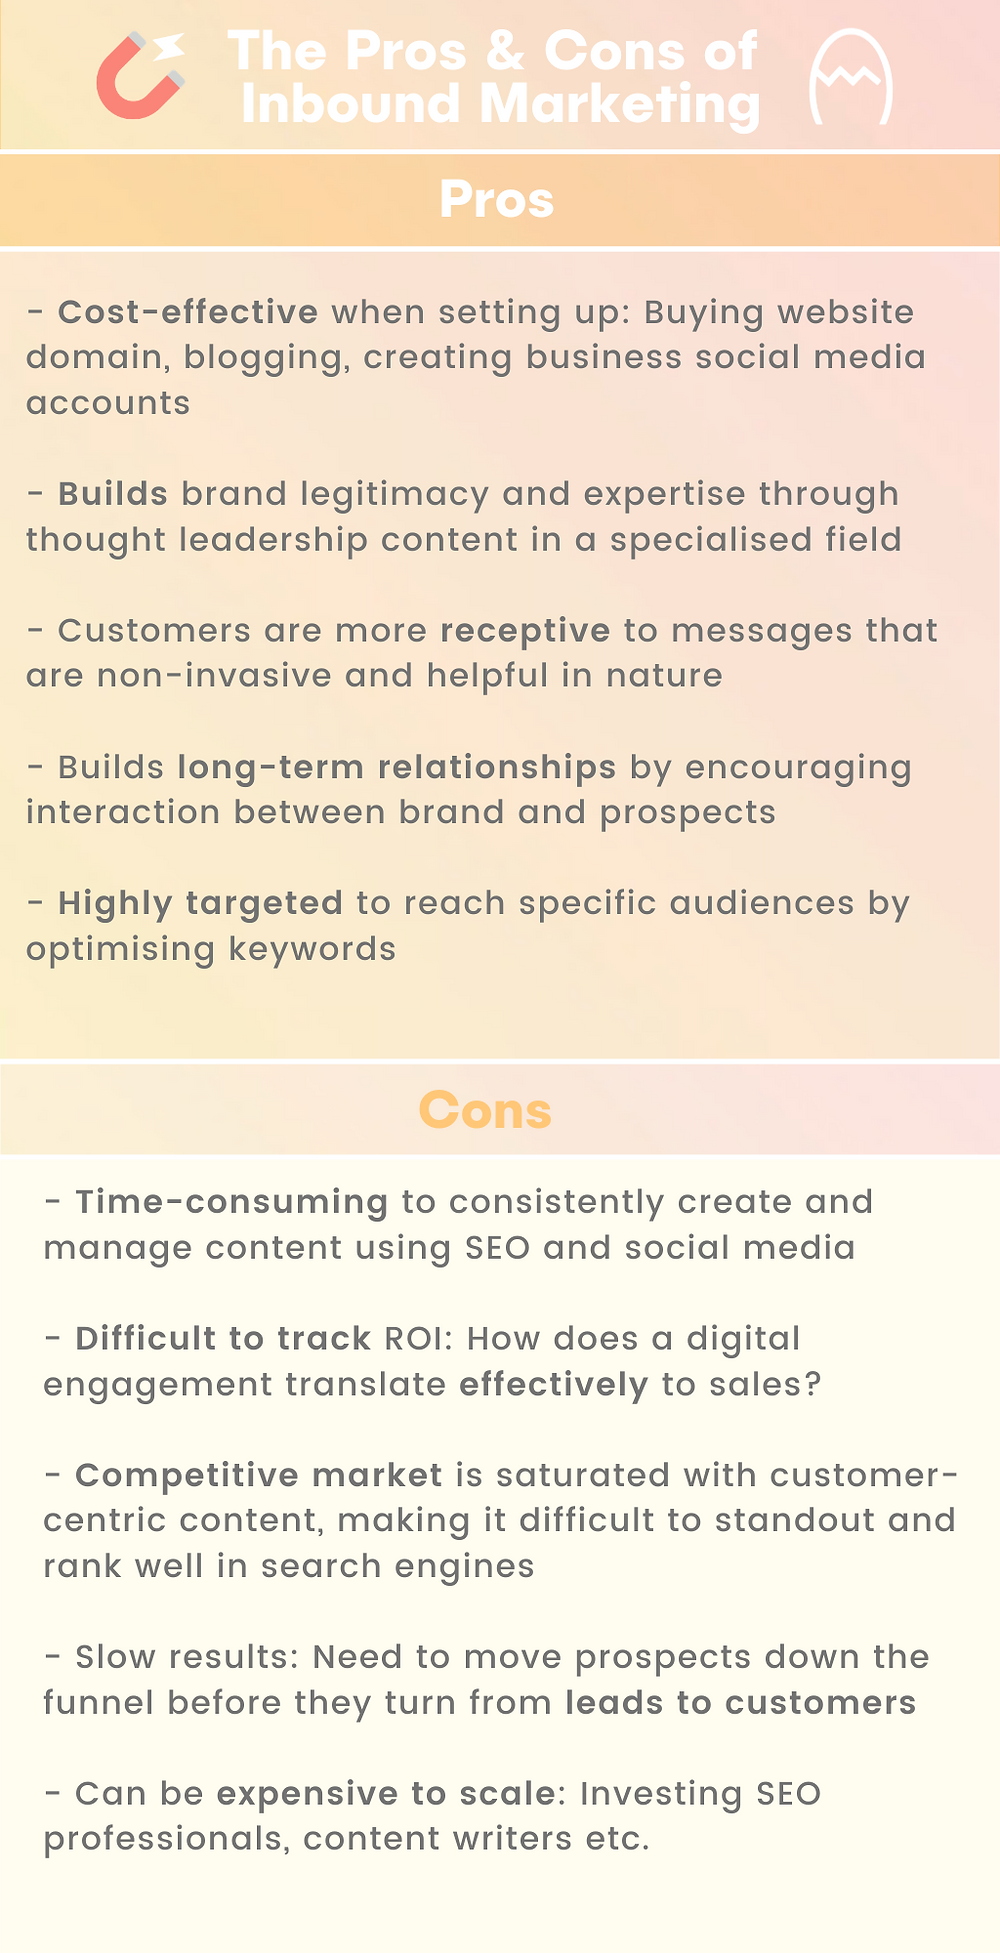 Pros and cons of inbound marketing